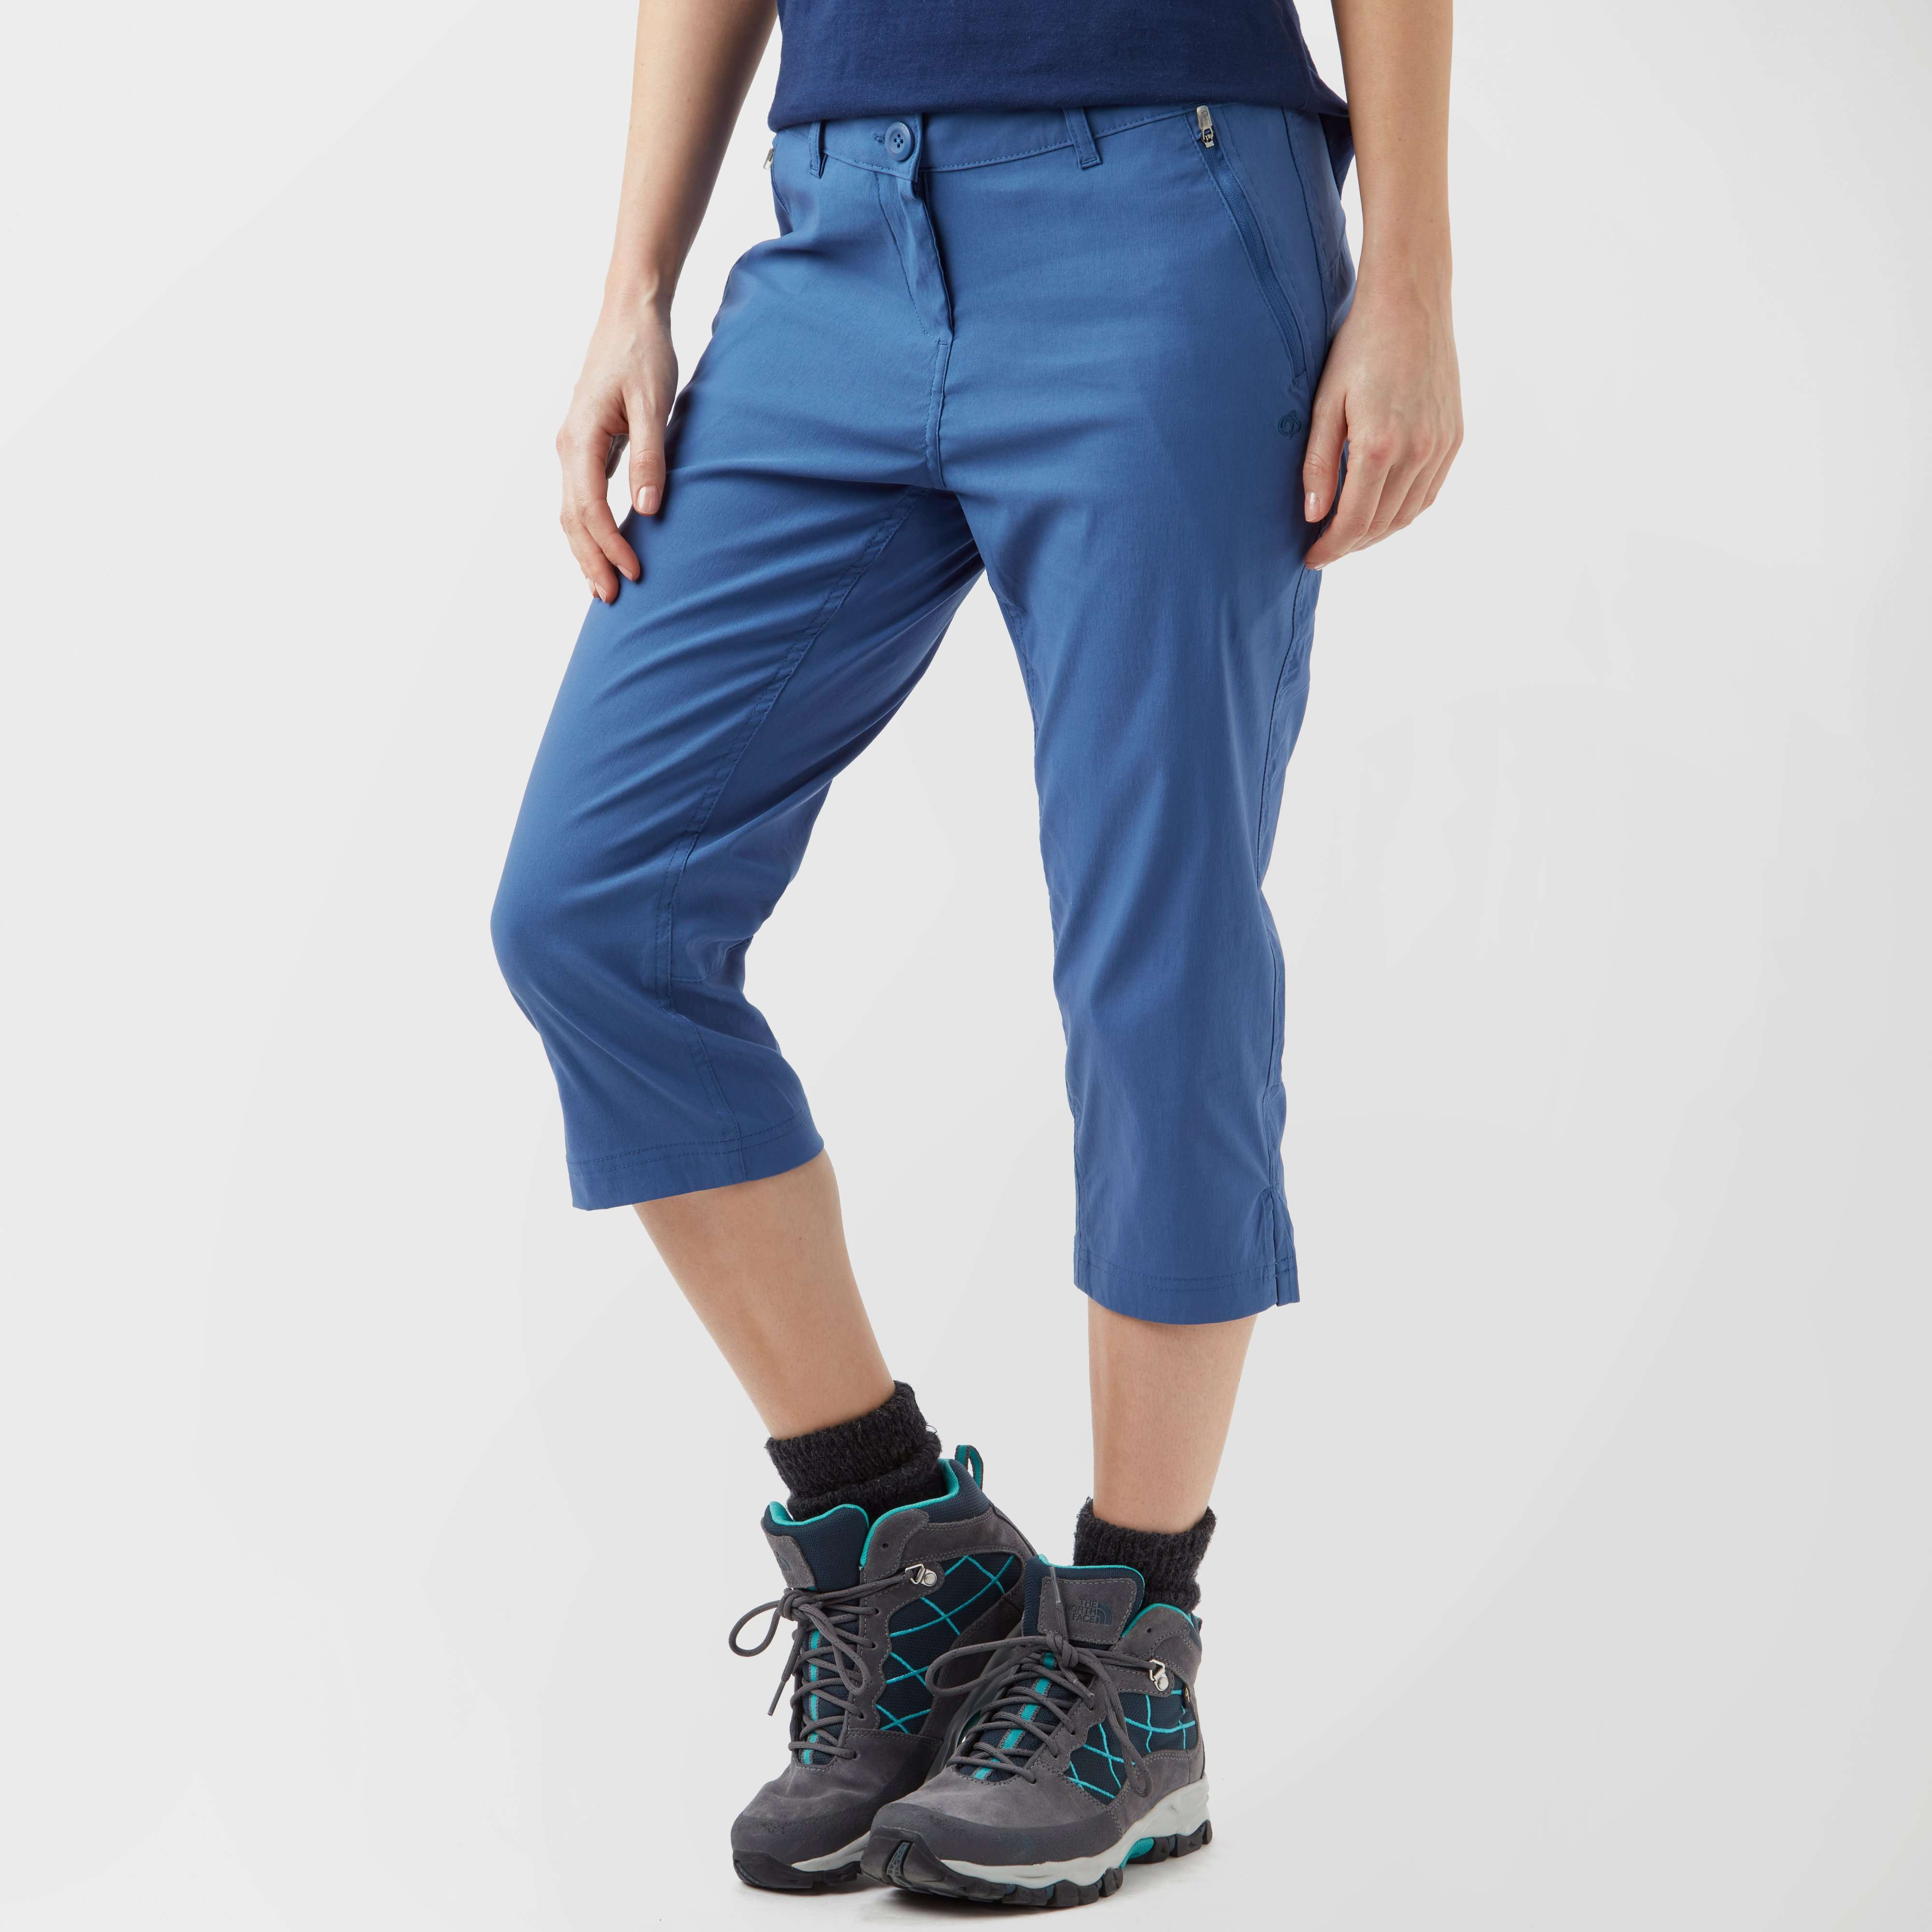 CRAGHOPPERS Women's Kiwi Pro Crop Trousers